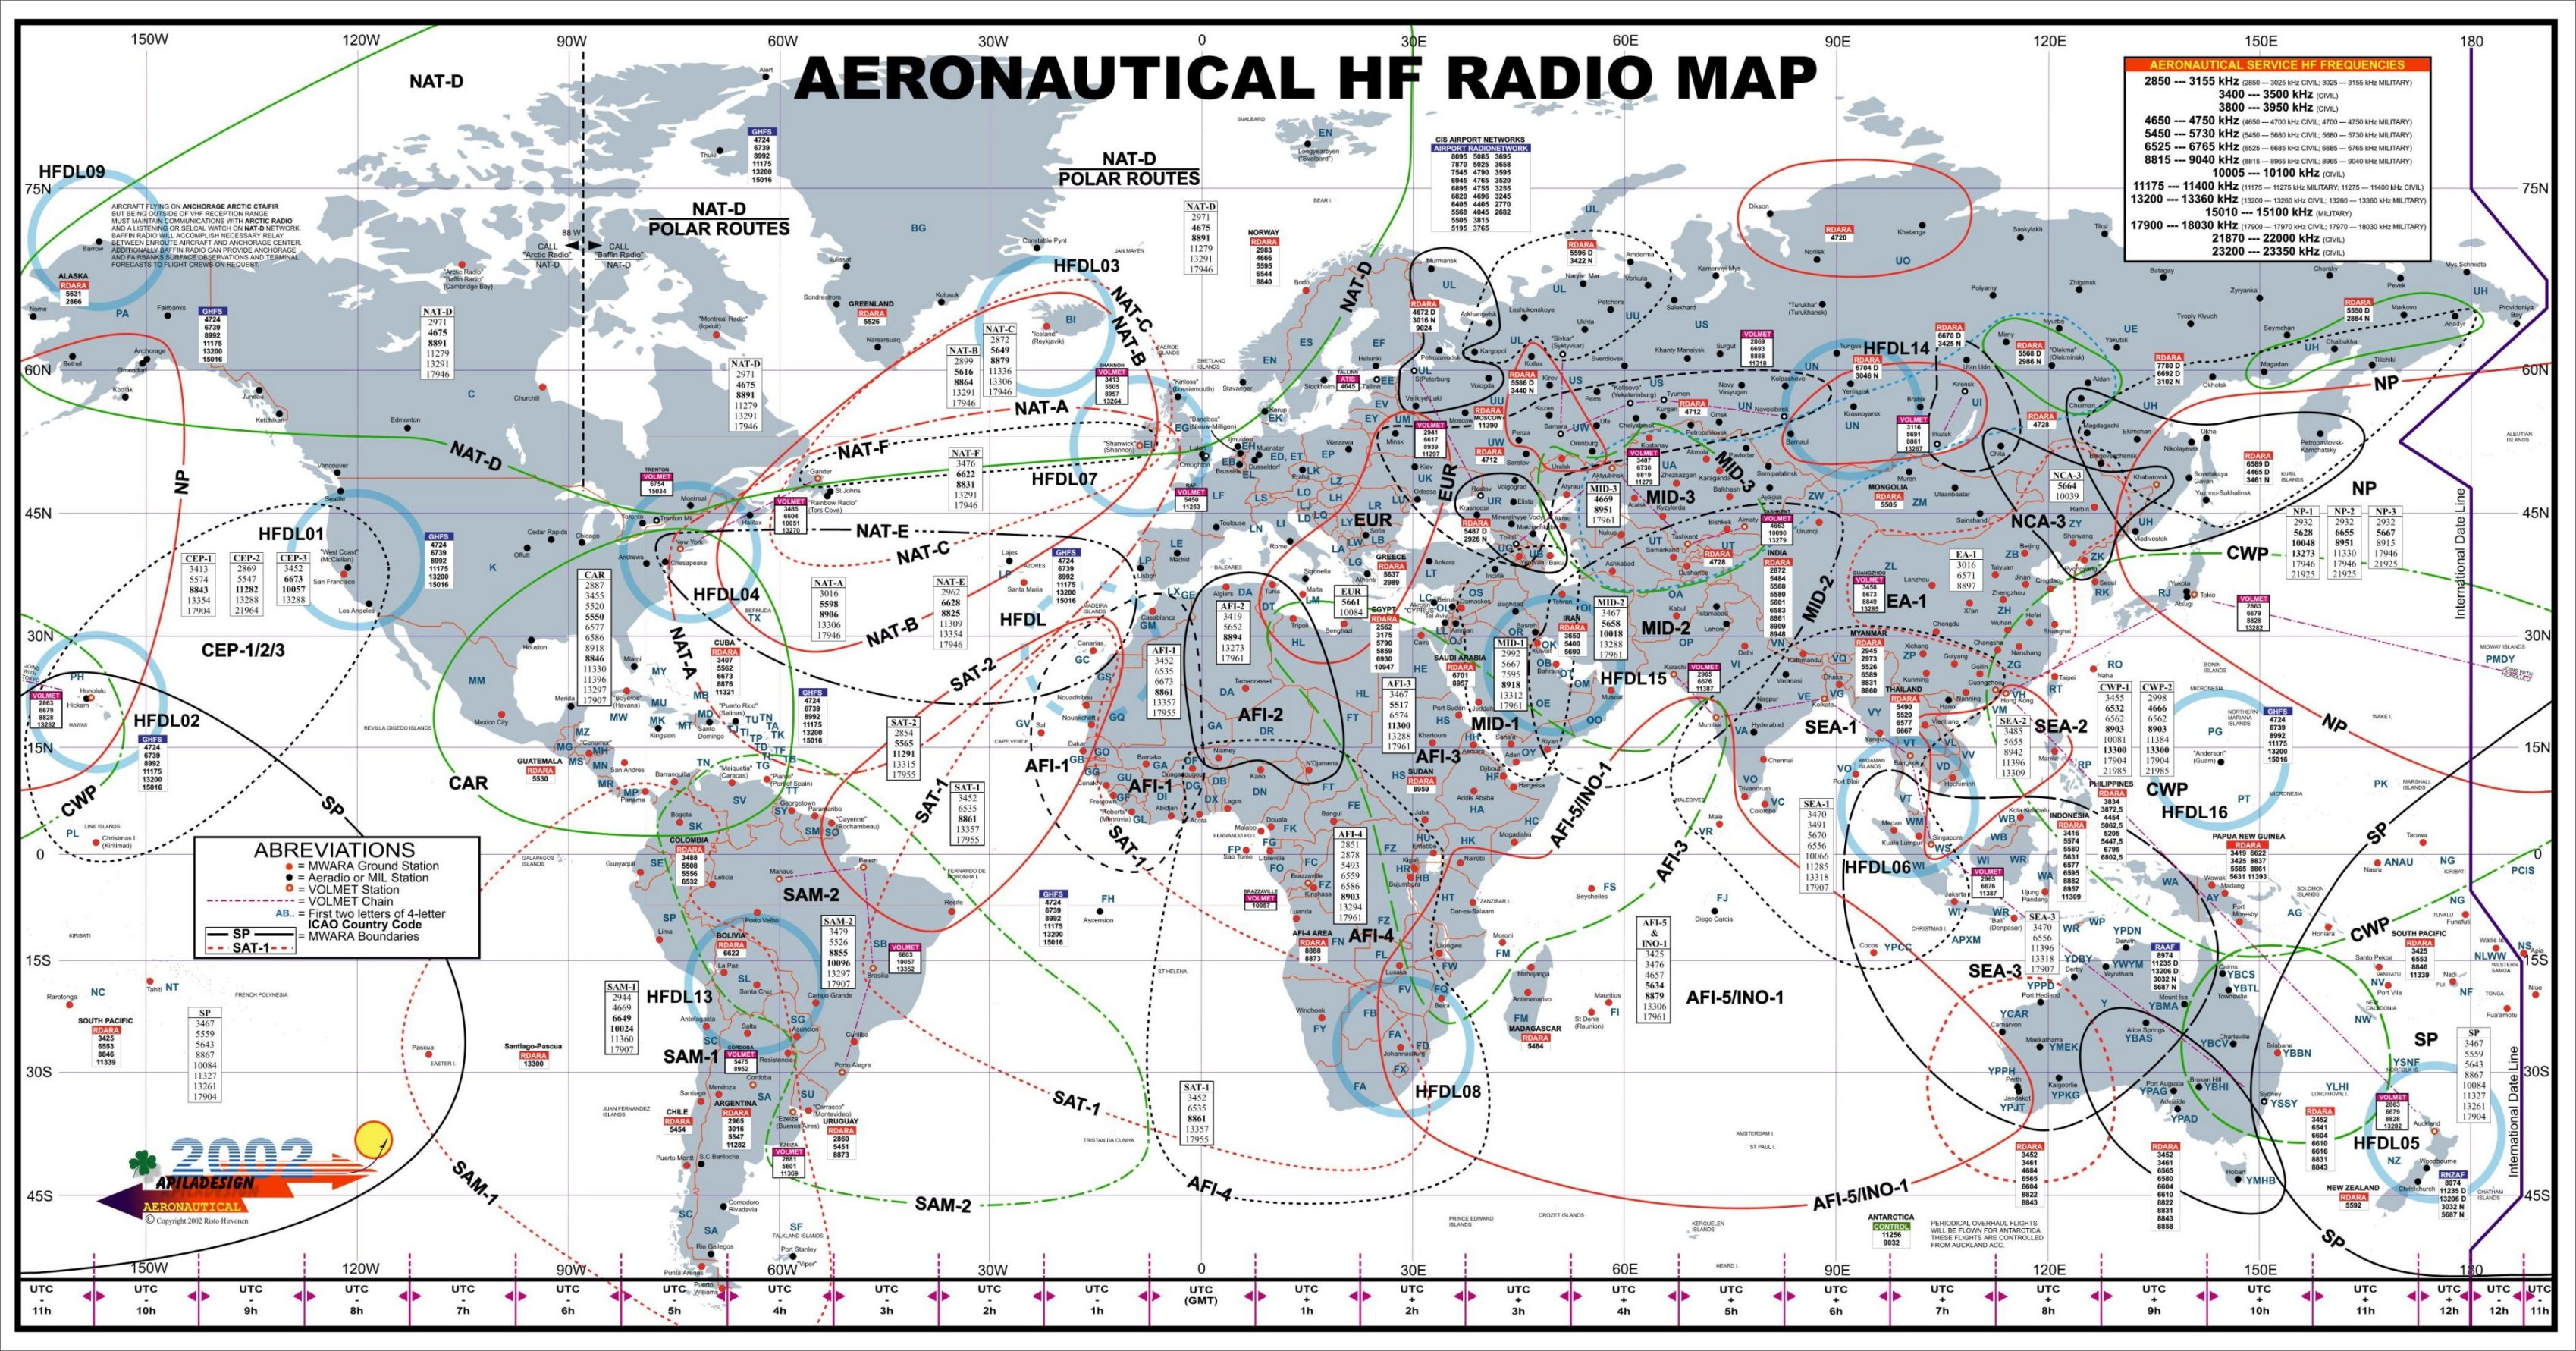 Aeronautical hf radio map qrz now amateur radio news download gumiabroncs